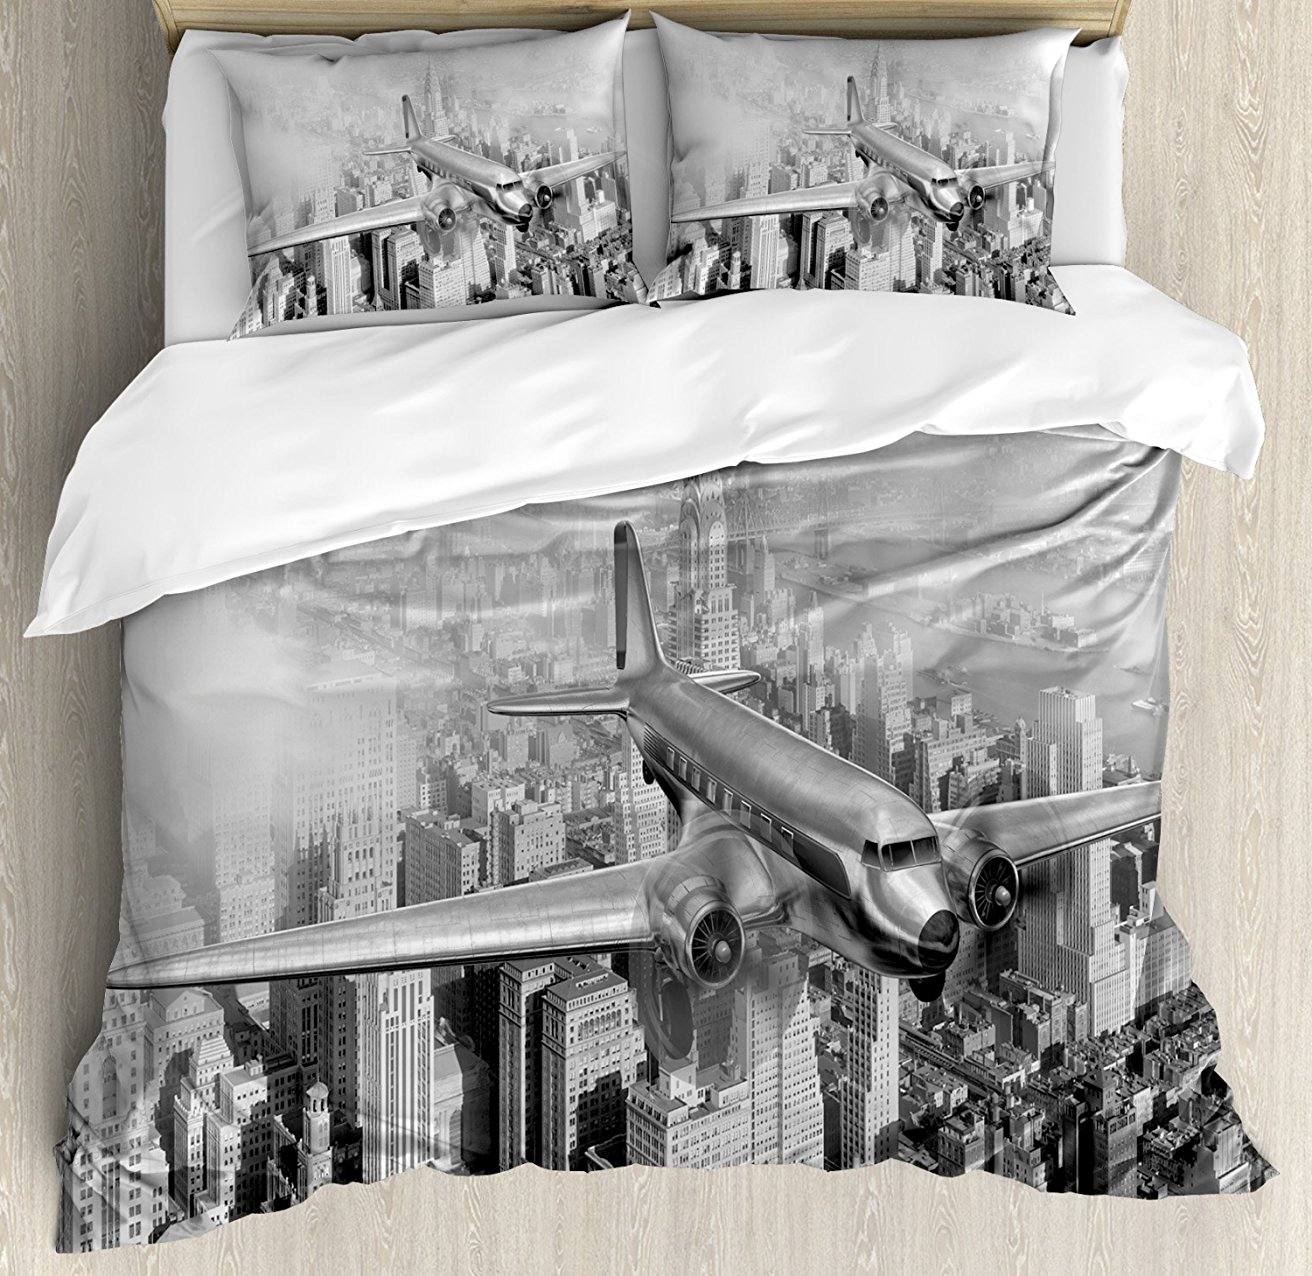 Vintage Duvet Cover Set, Nostalgic Dated Plane Flying over Skyscrapers in New York City Urban Life, 4 Piece Bedding Set